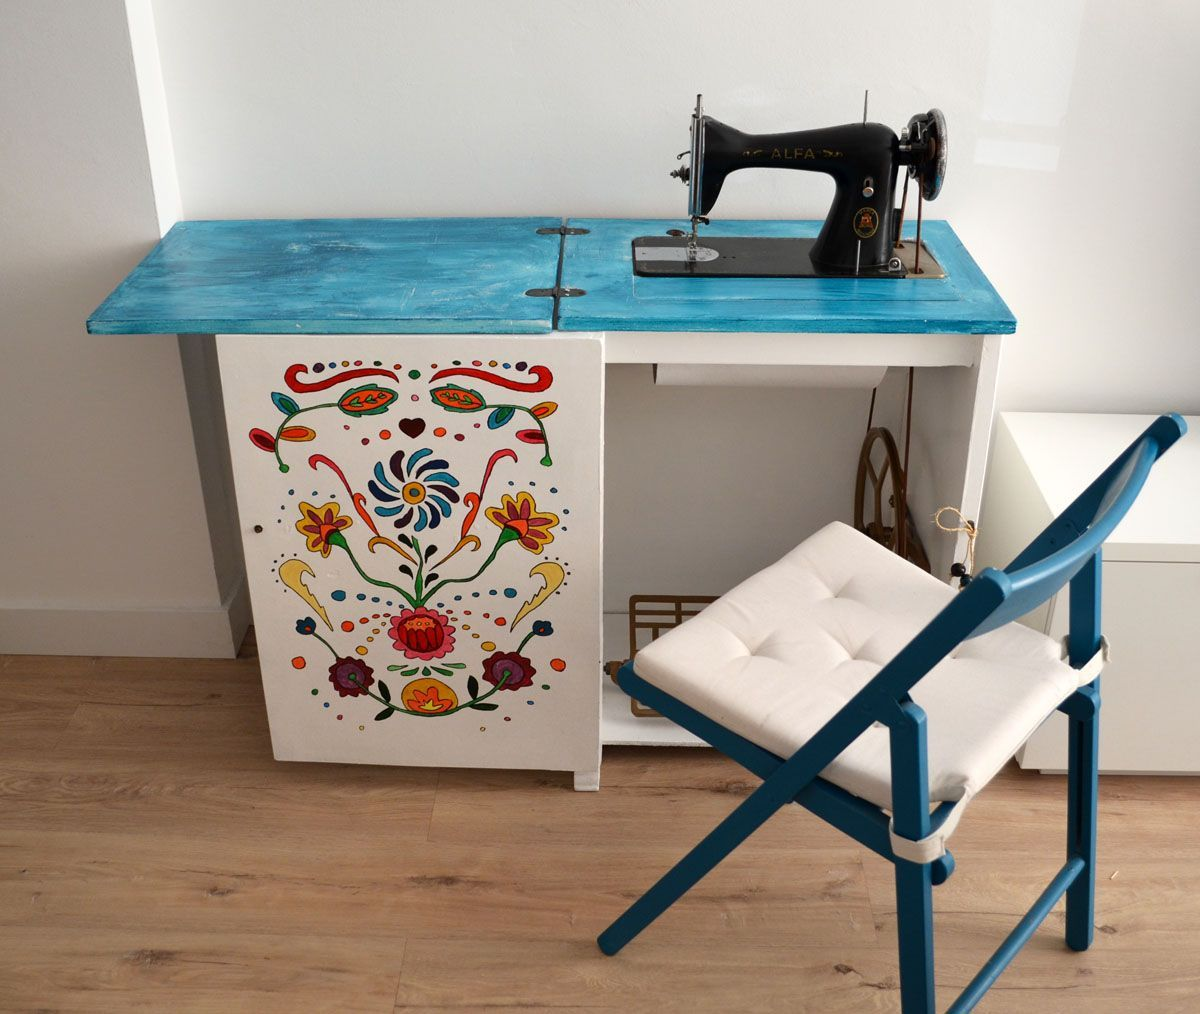 Mueble maquina coser antigua restauracion that thing you for Diseno de muebles de maquinas de coser